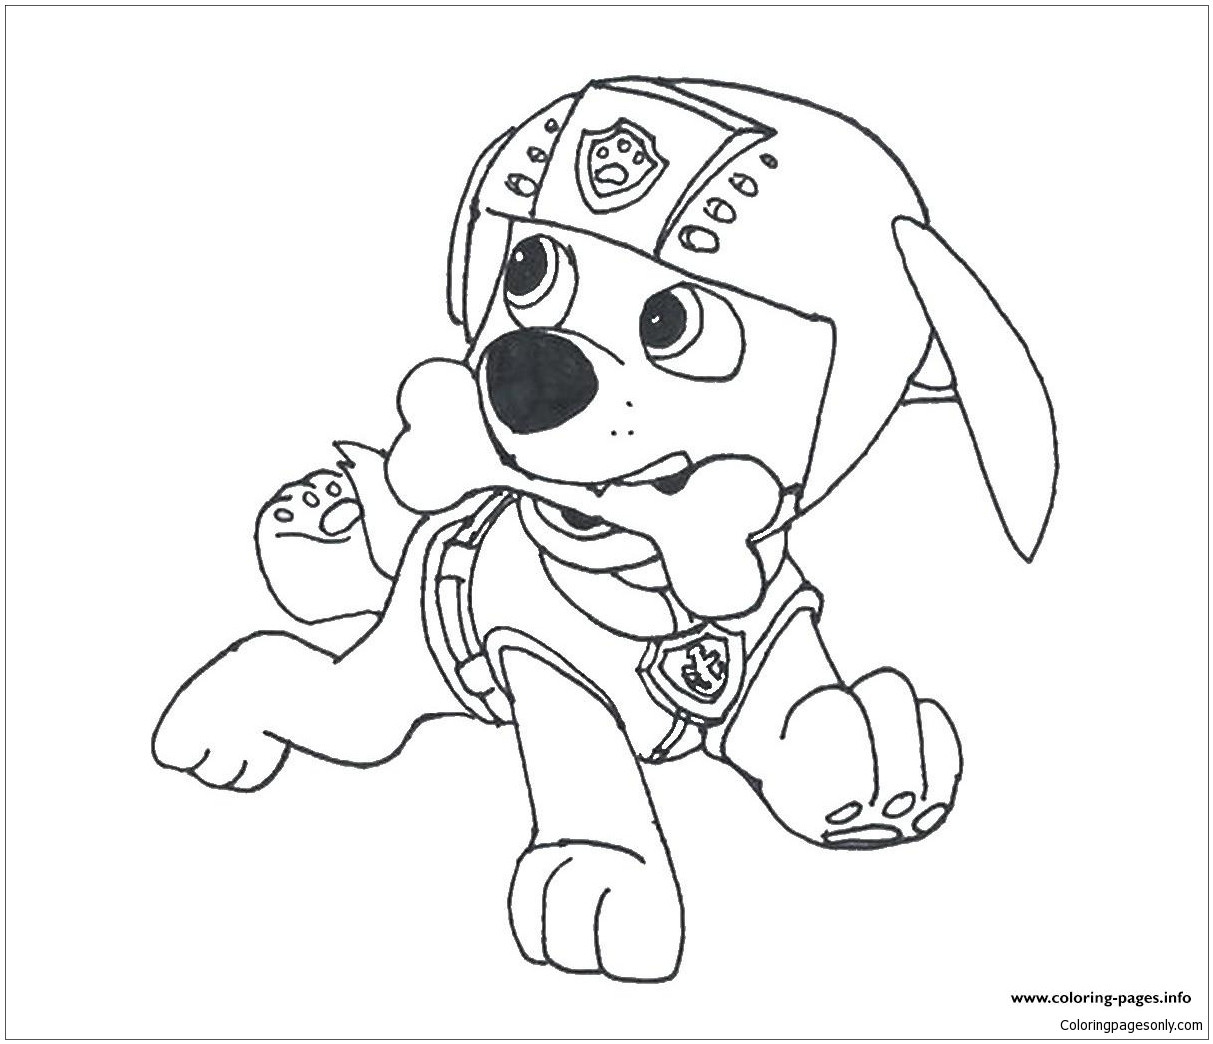 1213x1044 Dry Bones Coloring Pages To Print For Kids Endearing